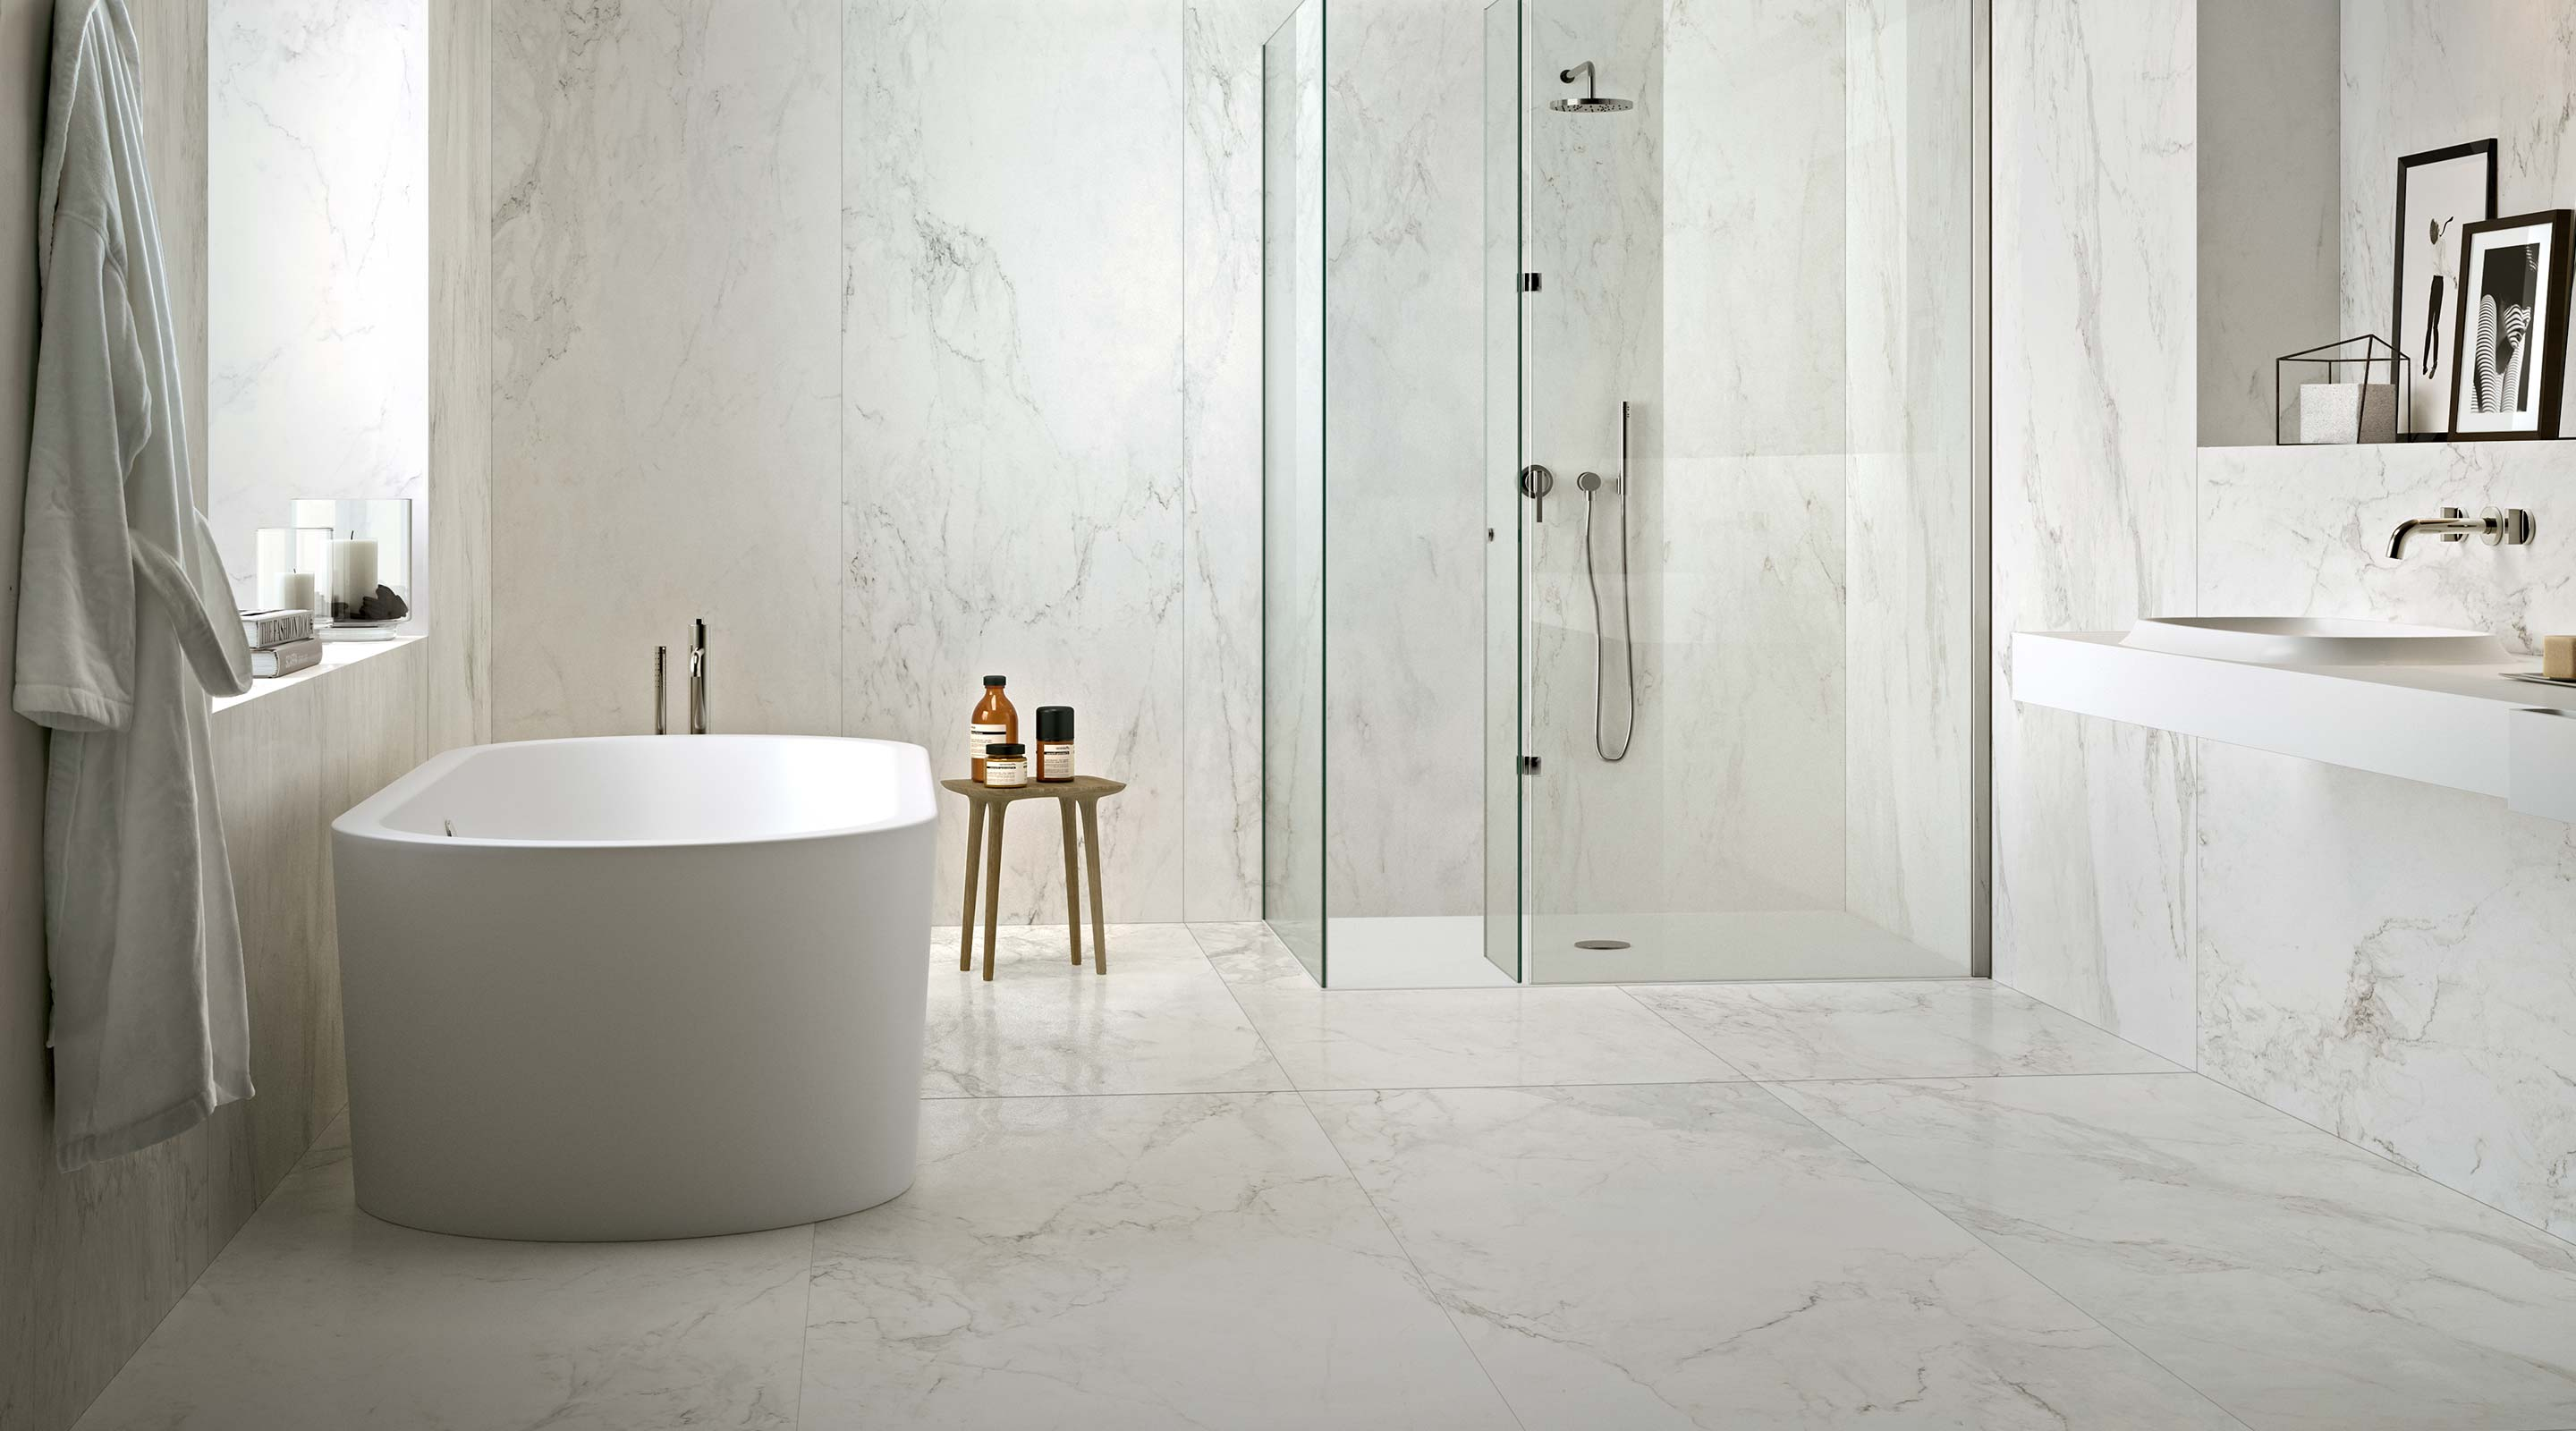 Bathroom tiles | Florim Ceramiche S.p.A.